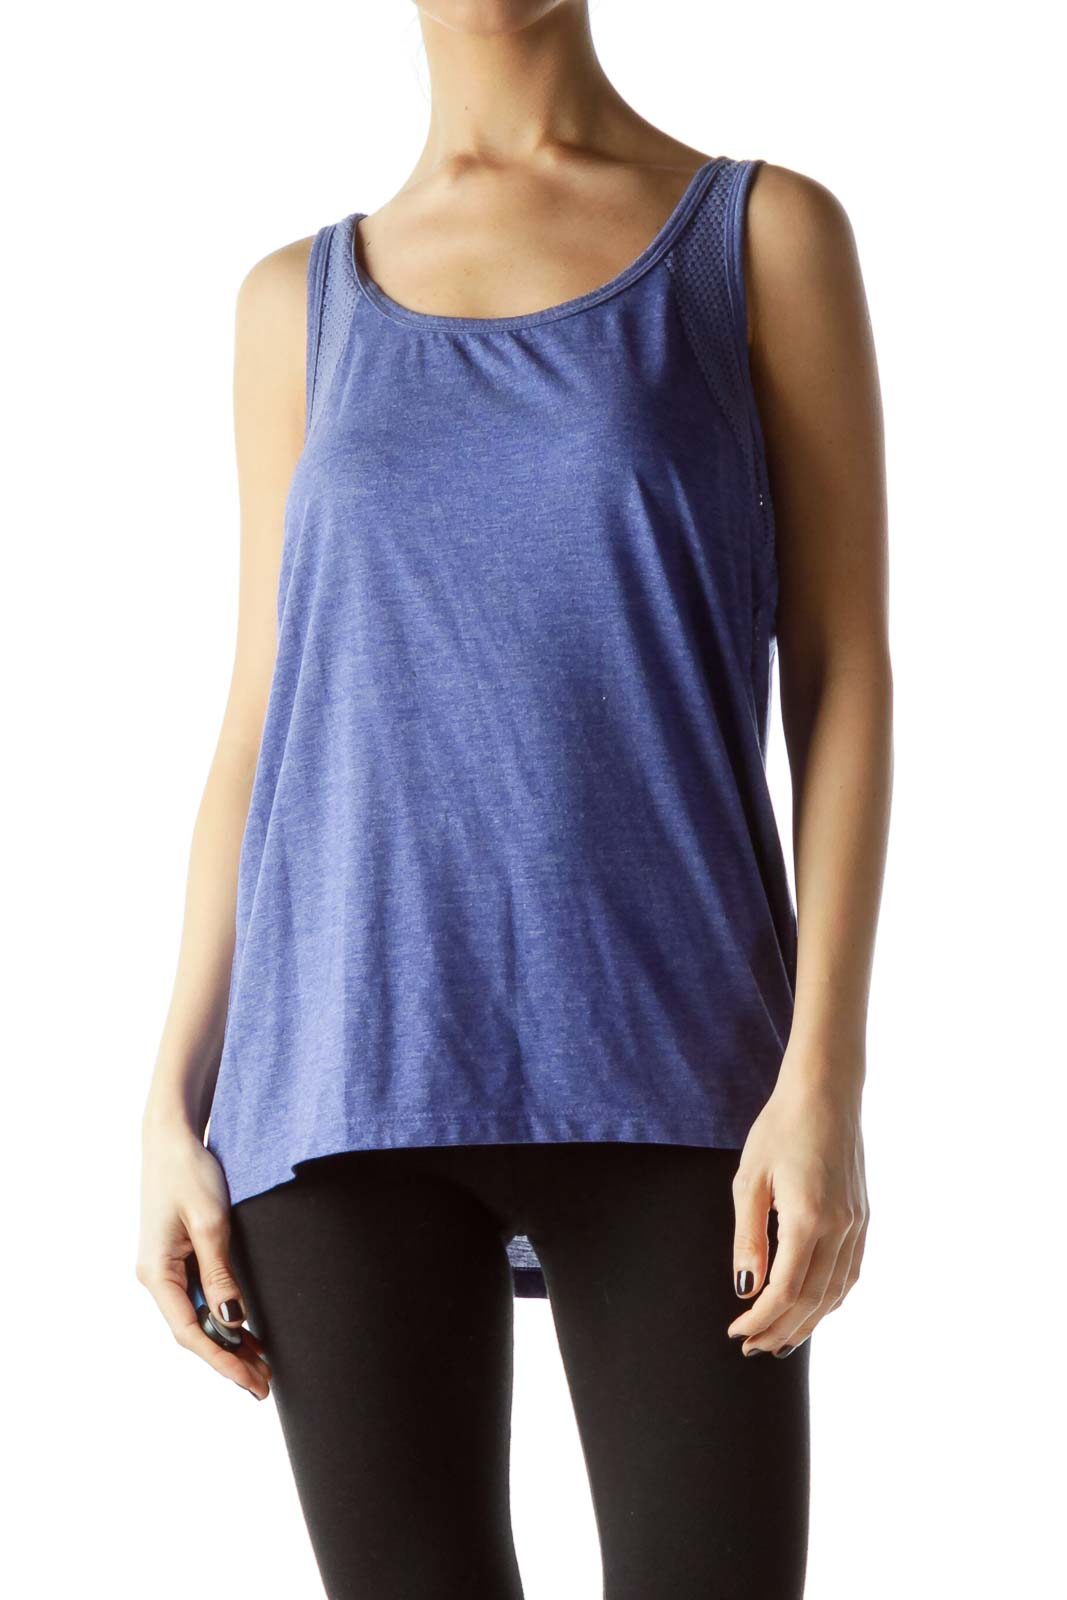 Blue Sleeveless Knit Cut-Out Design Yoga Top